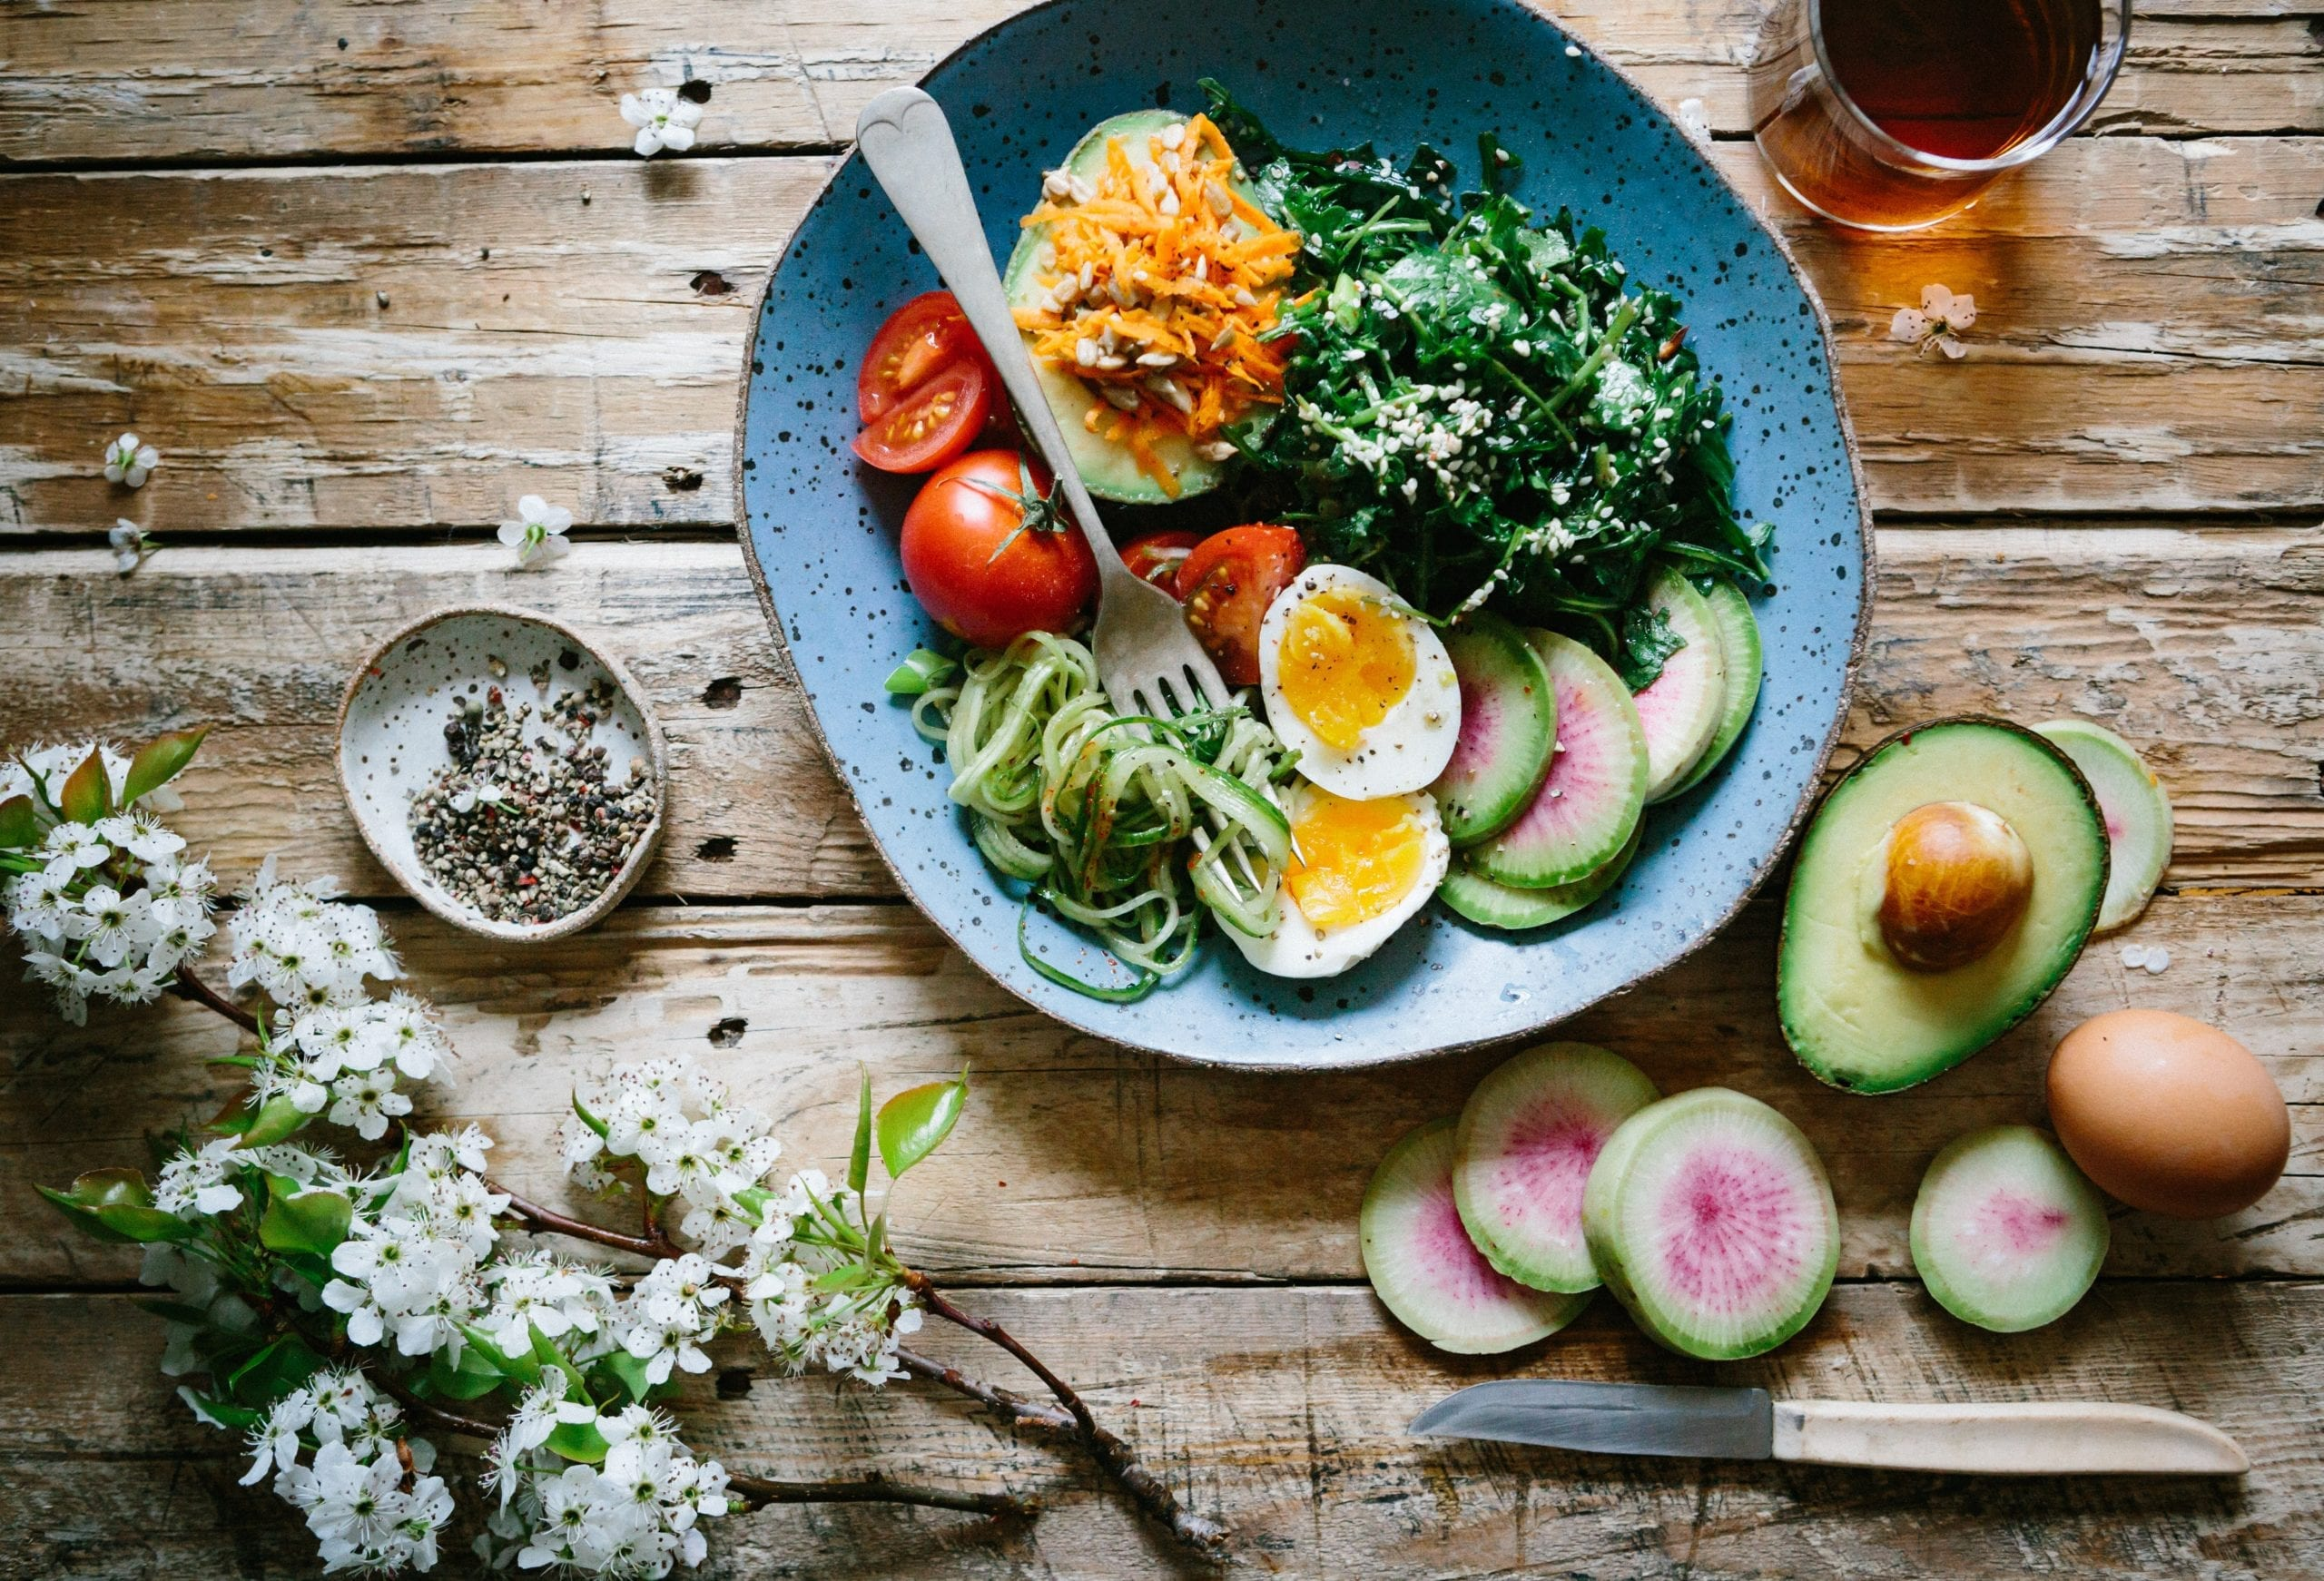 Fresh food is best to manage your mood with food